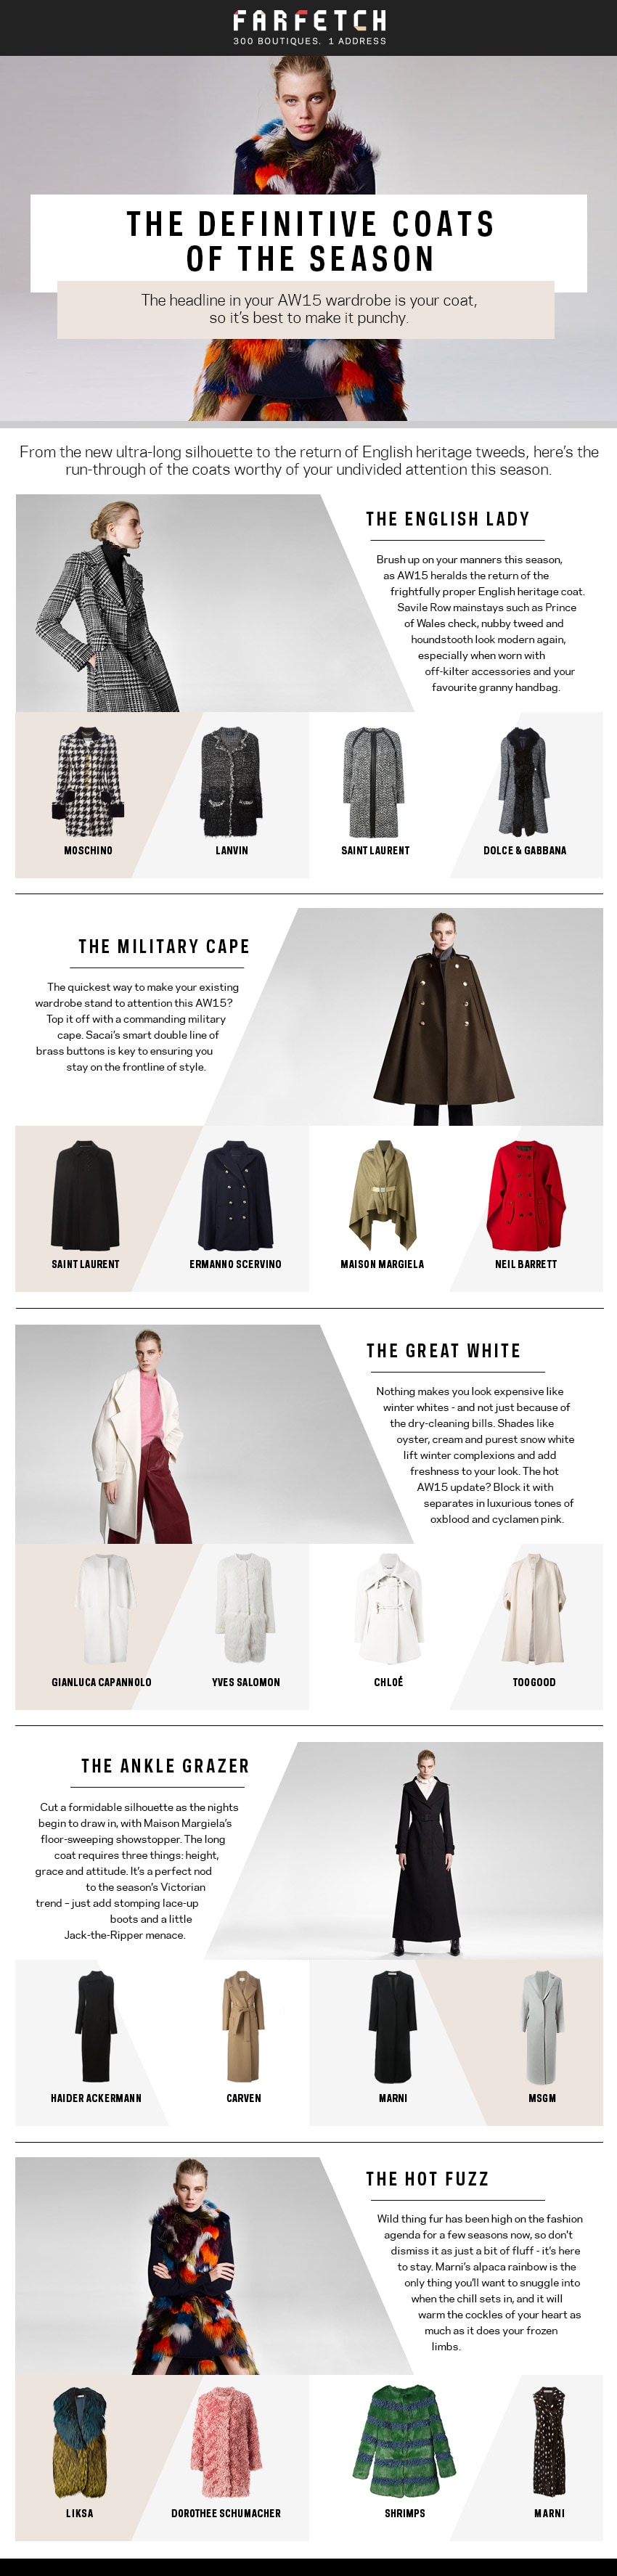 The Definitive Coats of the Season